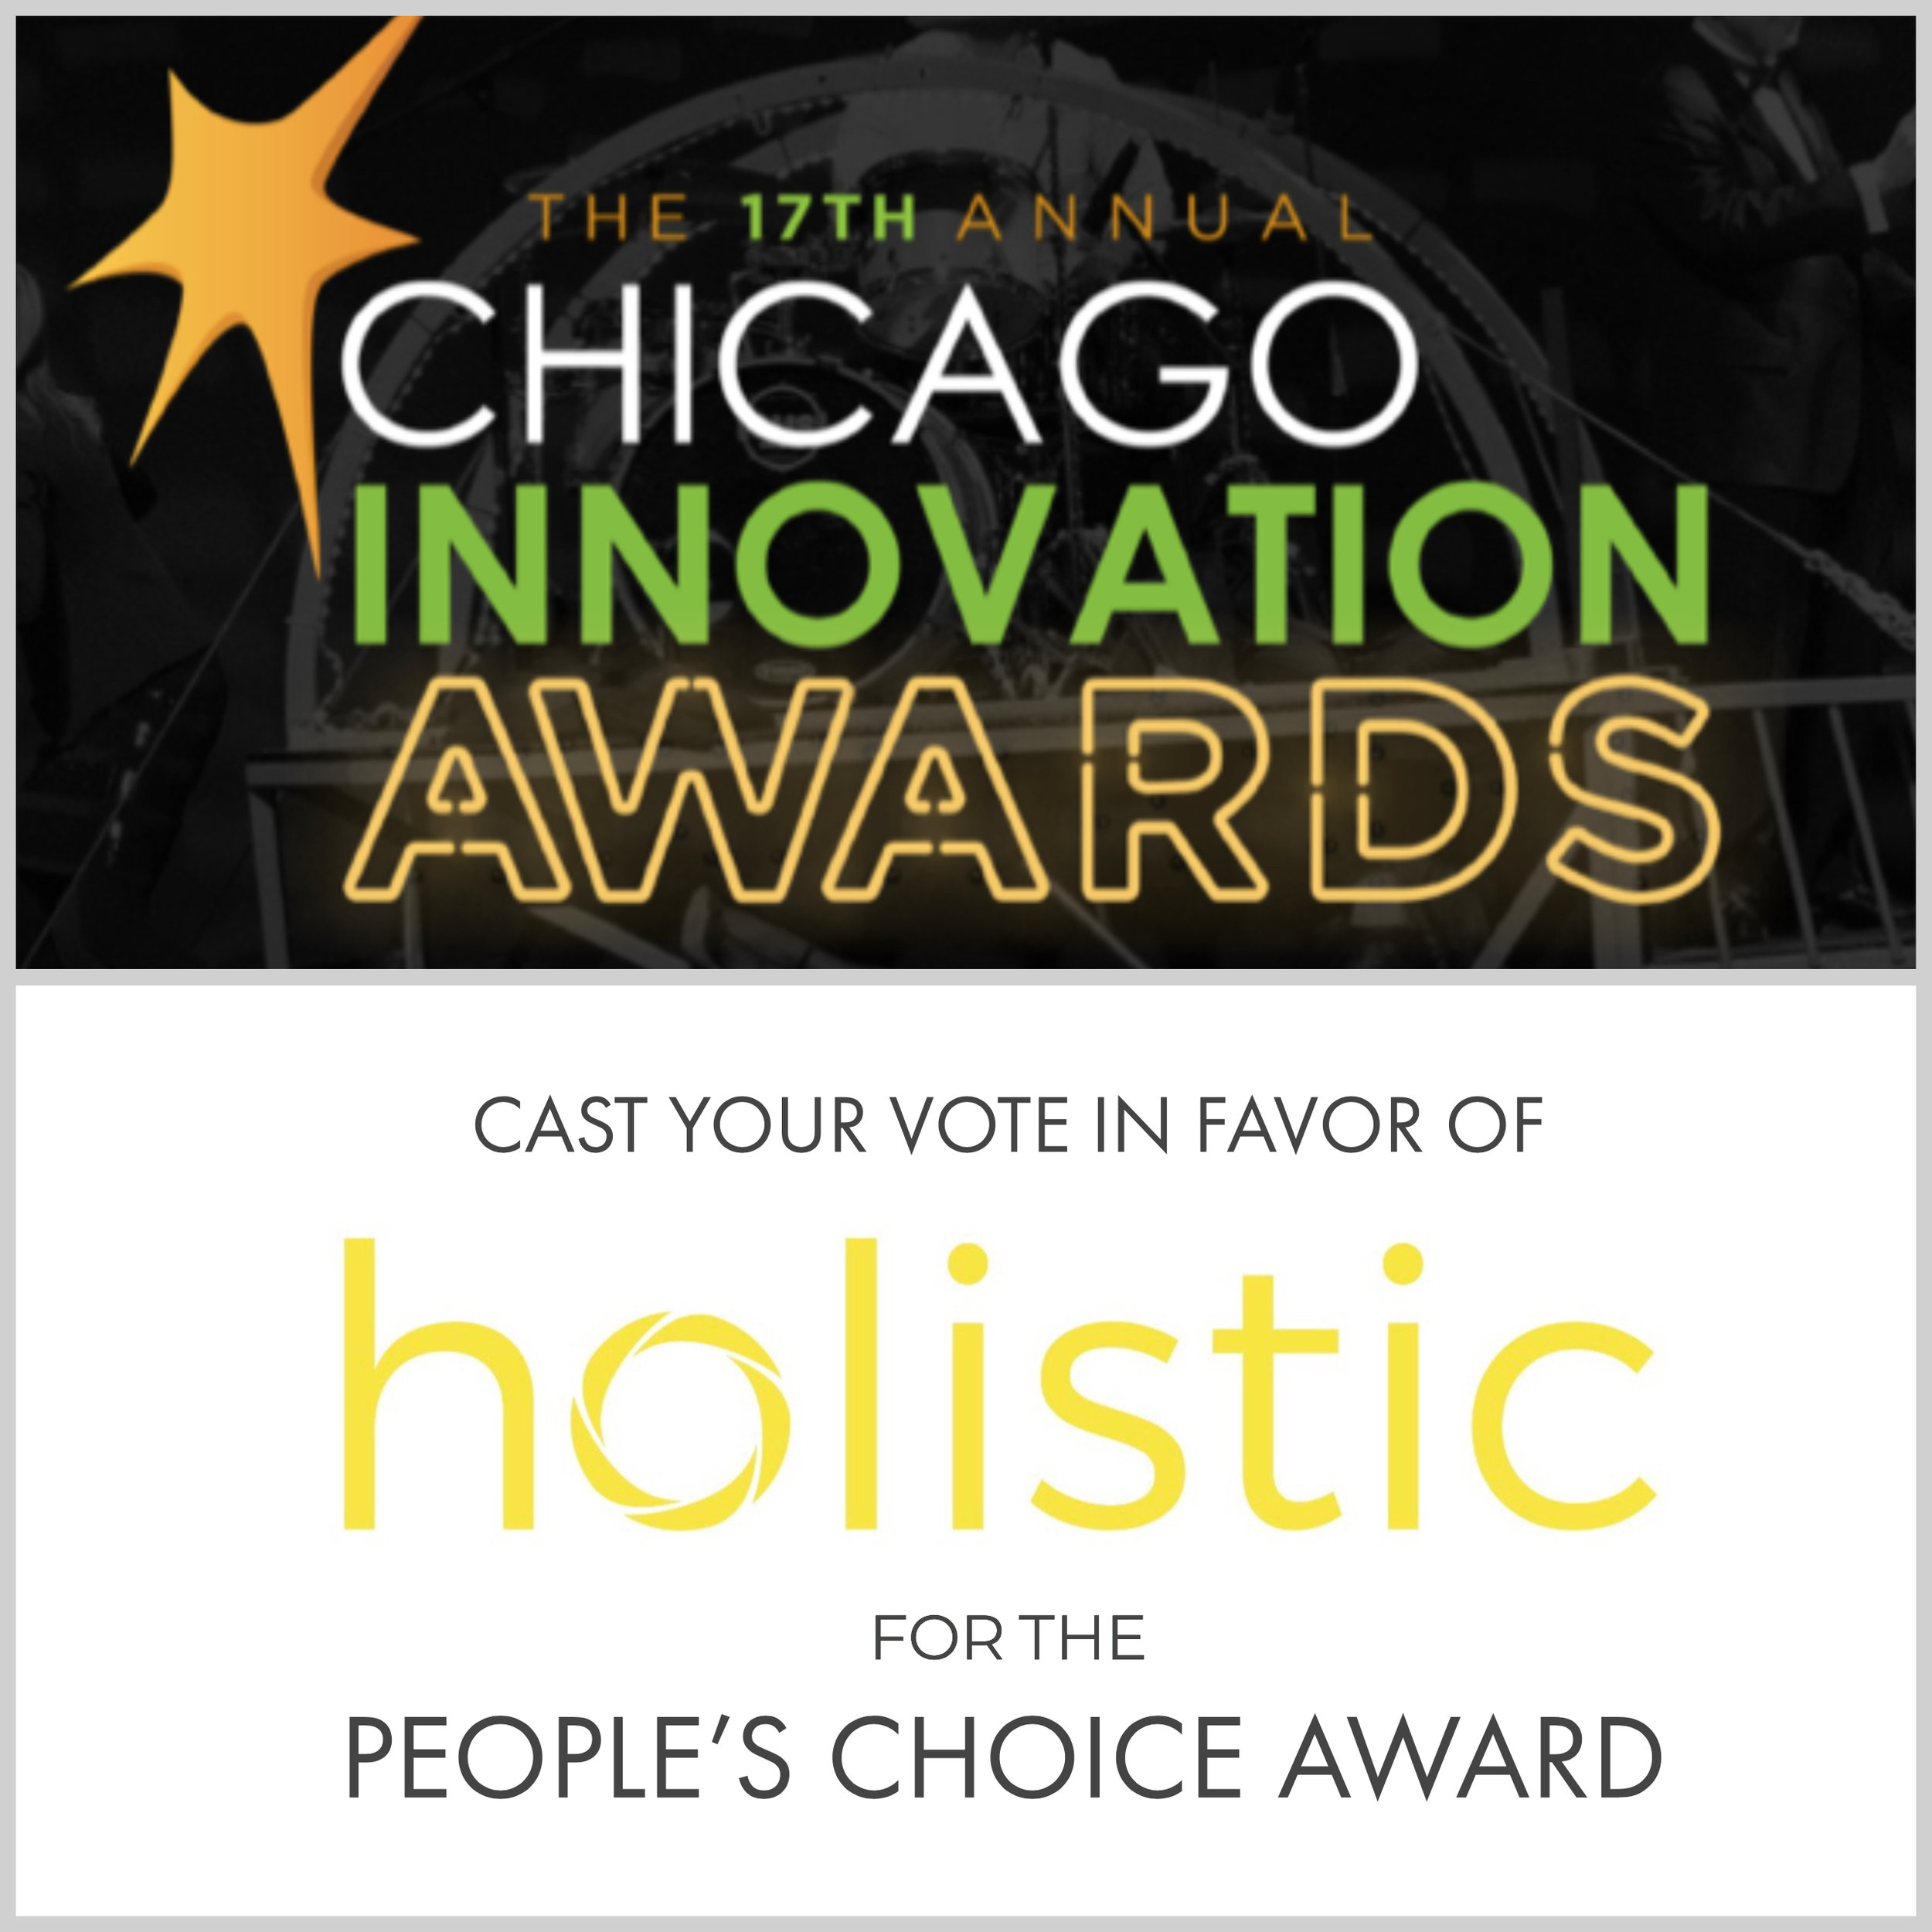 Holistic is one of the Top 100 Finalists for the Chicago Innovation Awards.  Vote  for us for the People's Choice Award before October 5th! (Hint: We're on page 7)